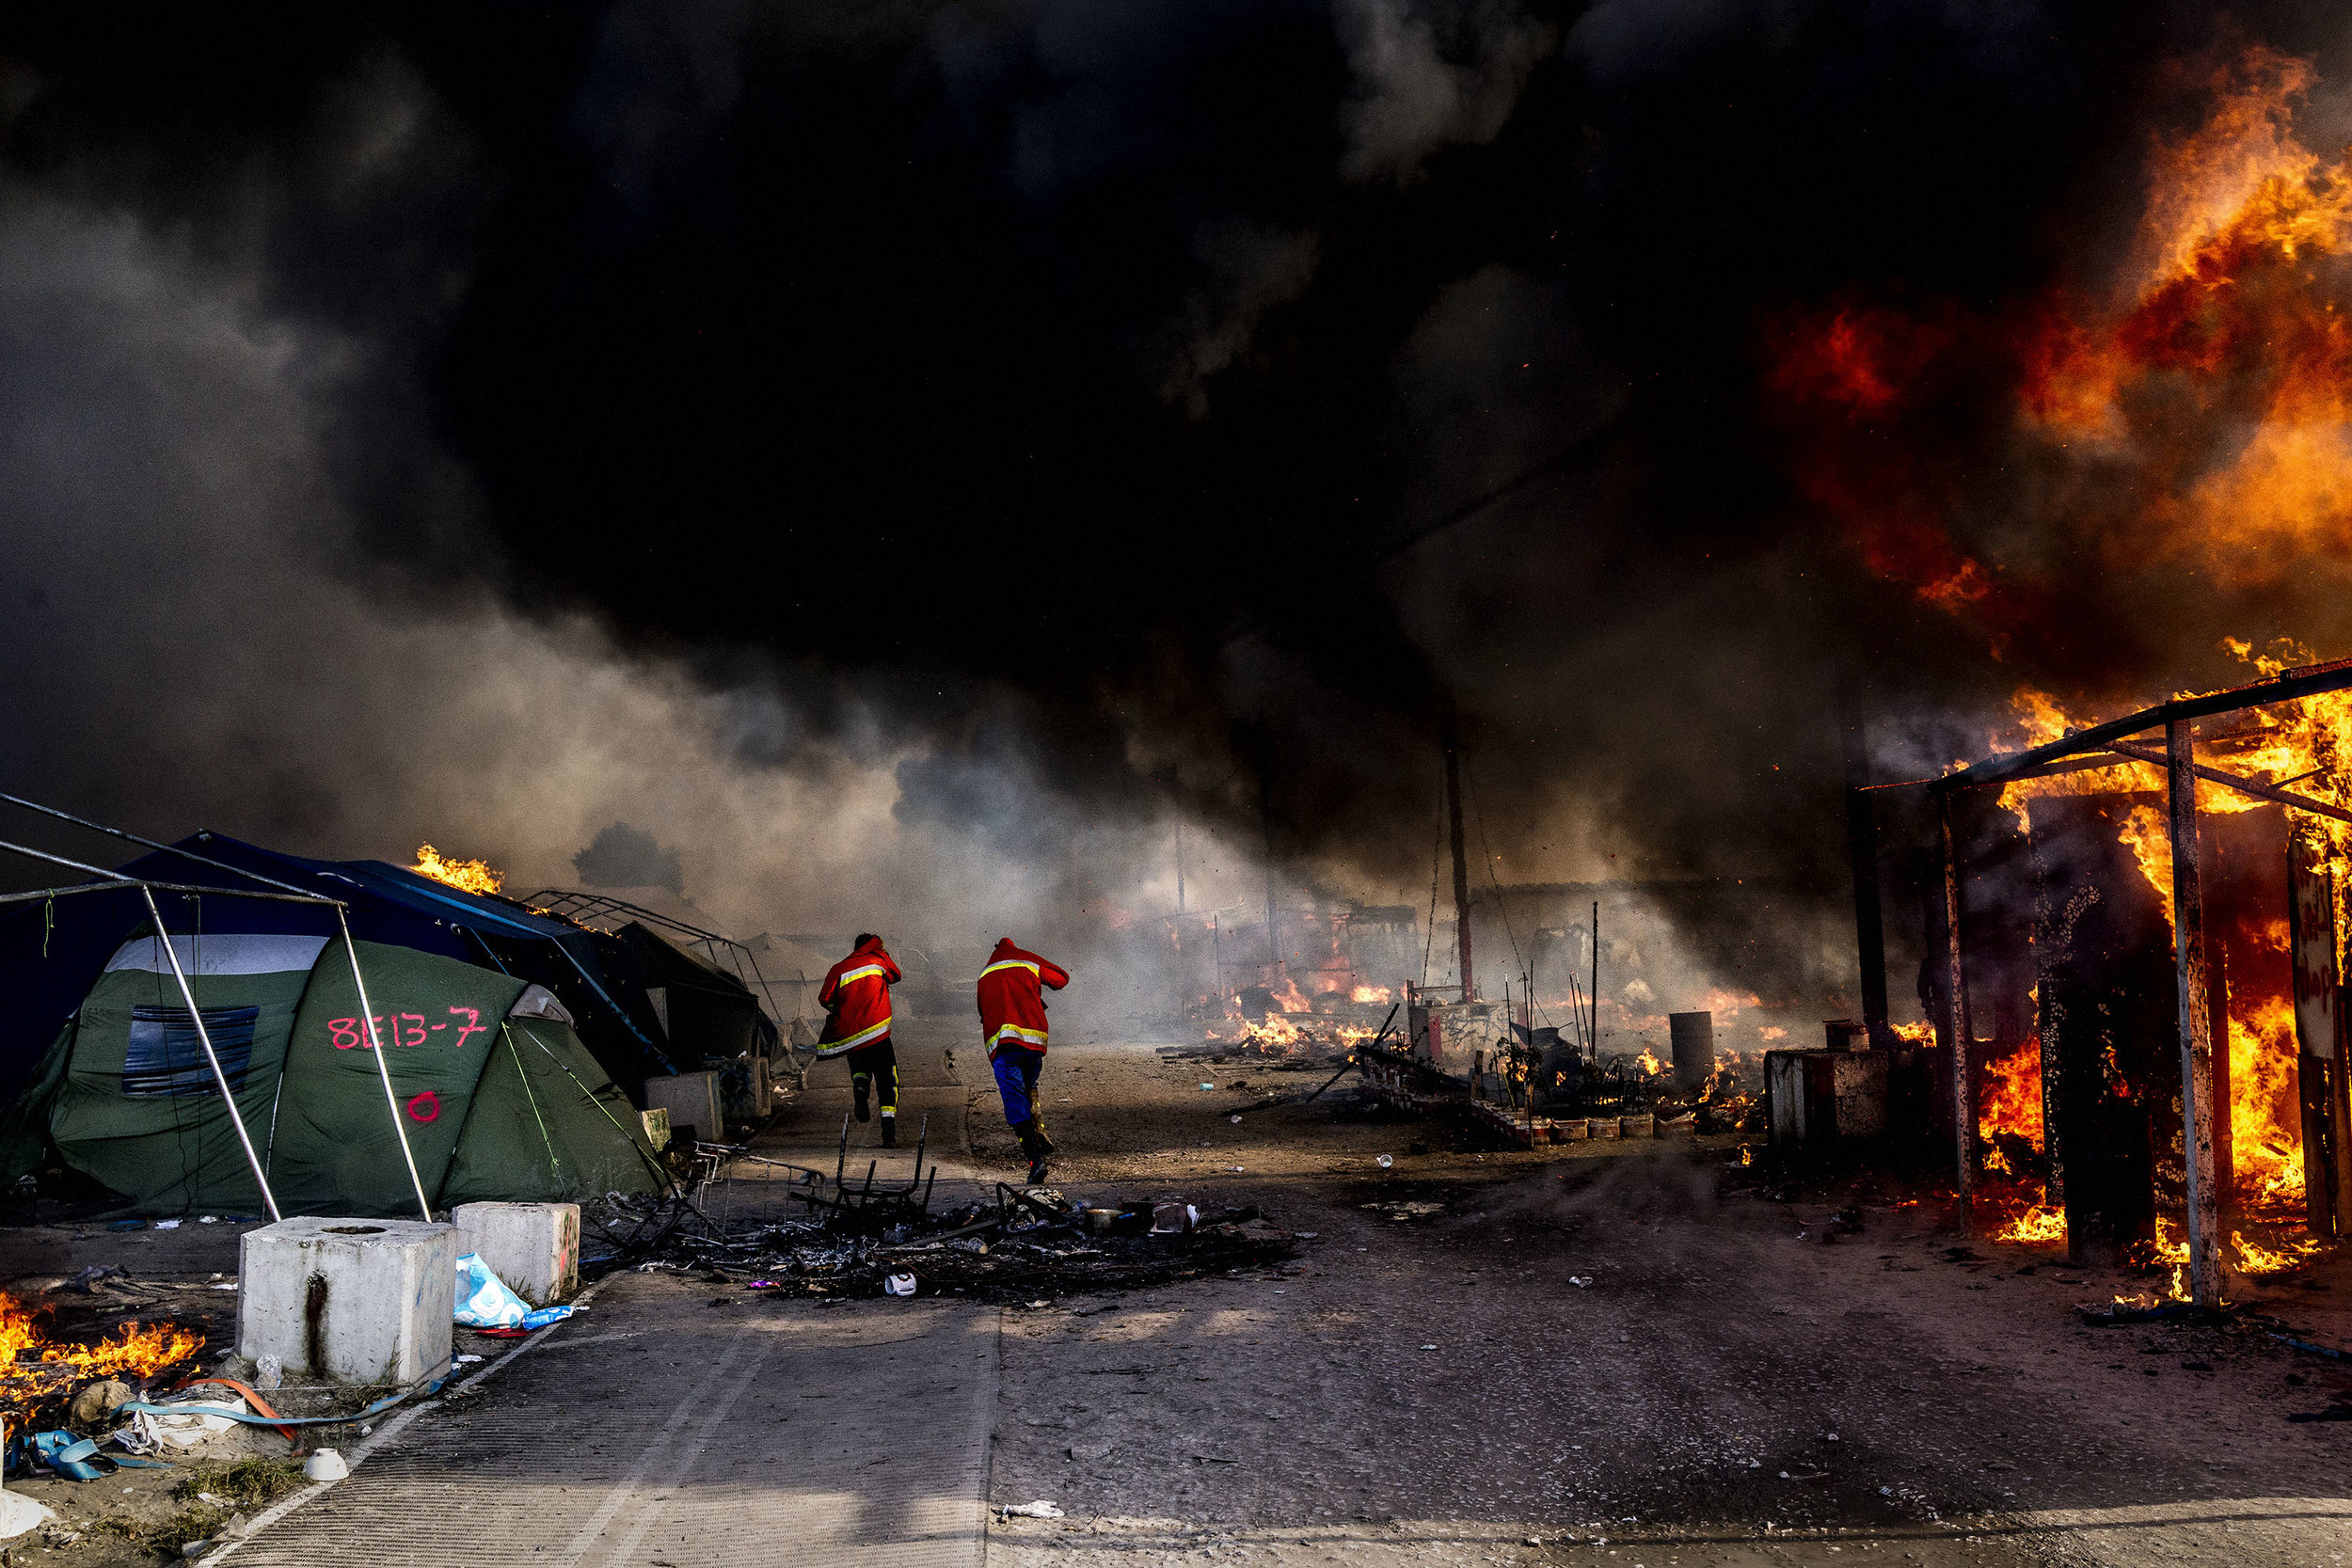 26th October 2016, The Jungle of Calais in France is in huge fire.